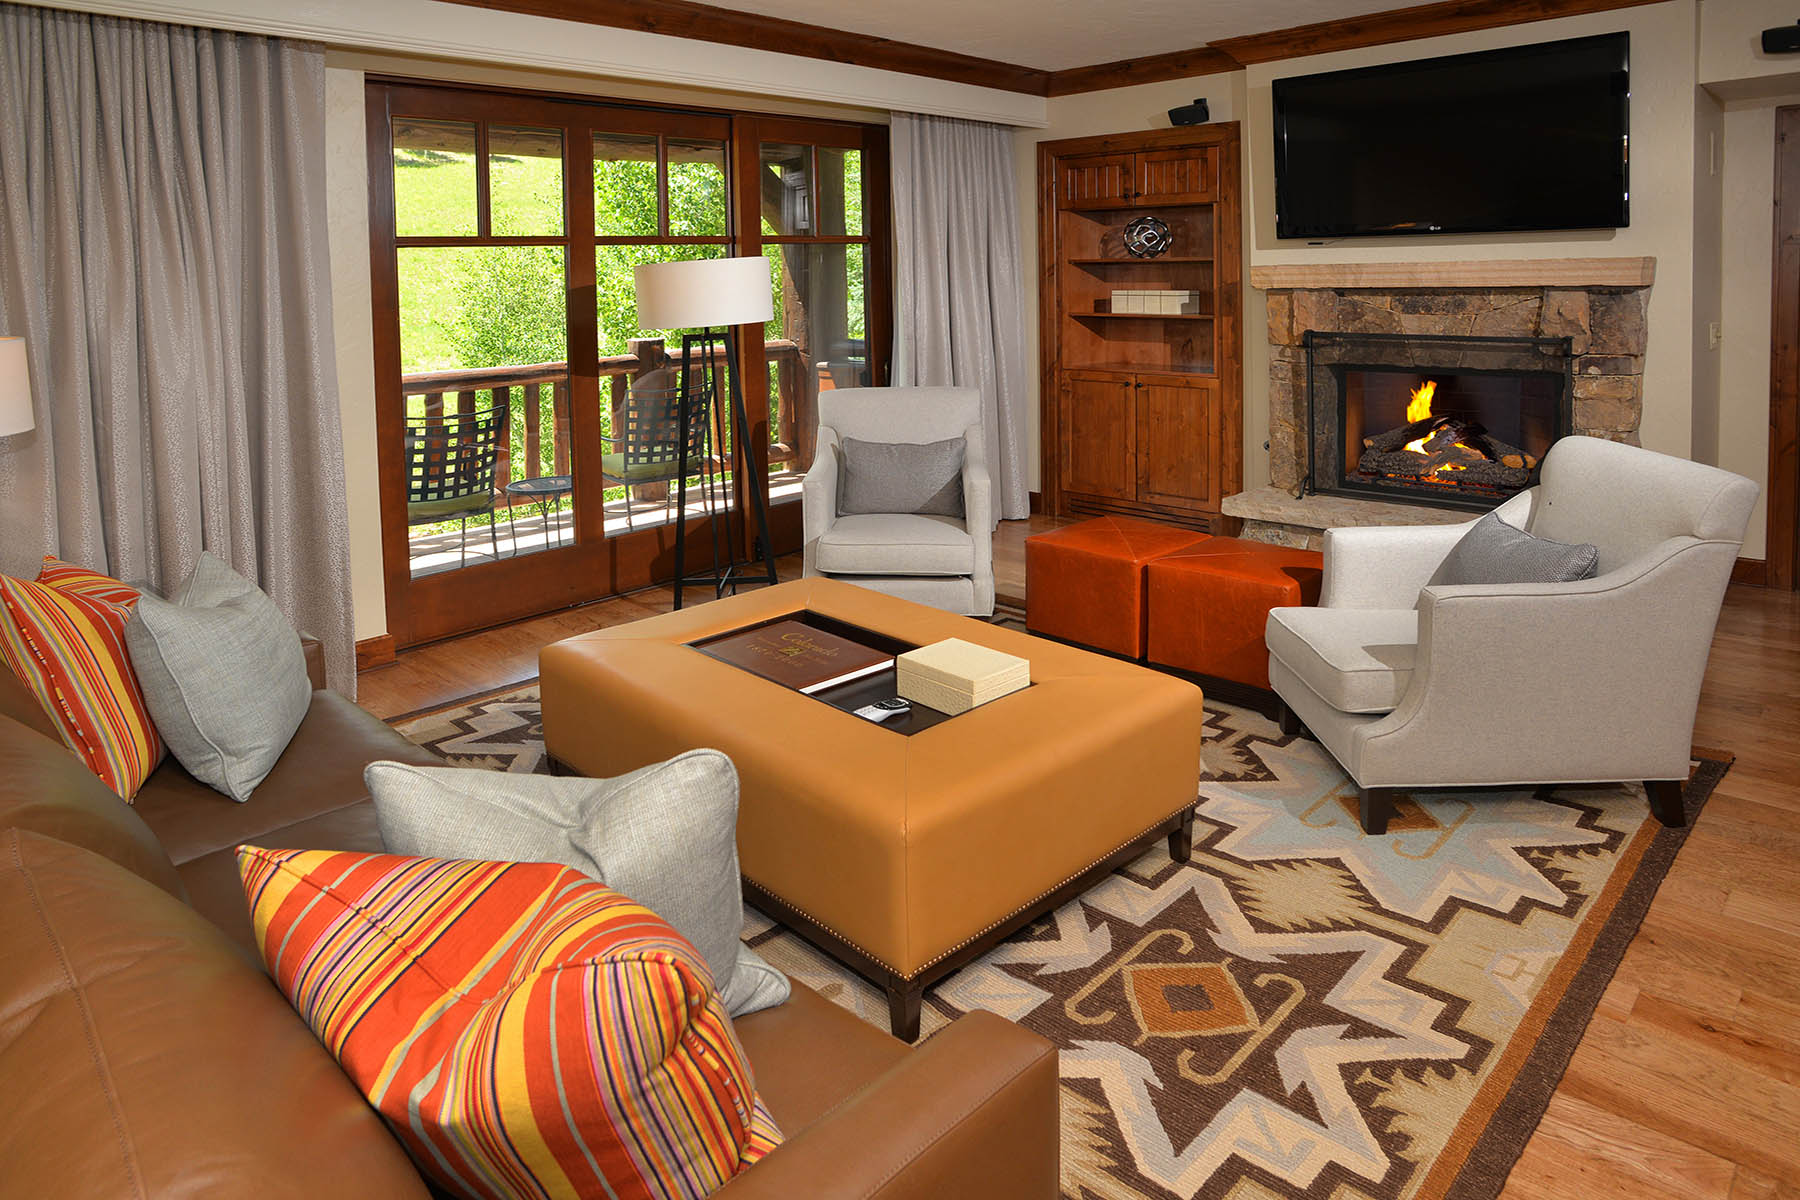 Fractional Ownership Properties por un Venta en Timbers Bachelor Gulch - #3403-10 100 Bachelor Ridge #3403-10 Beaver Creek, Colorado 81620 Estados Unidos